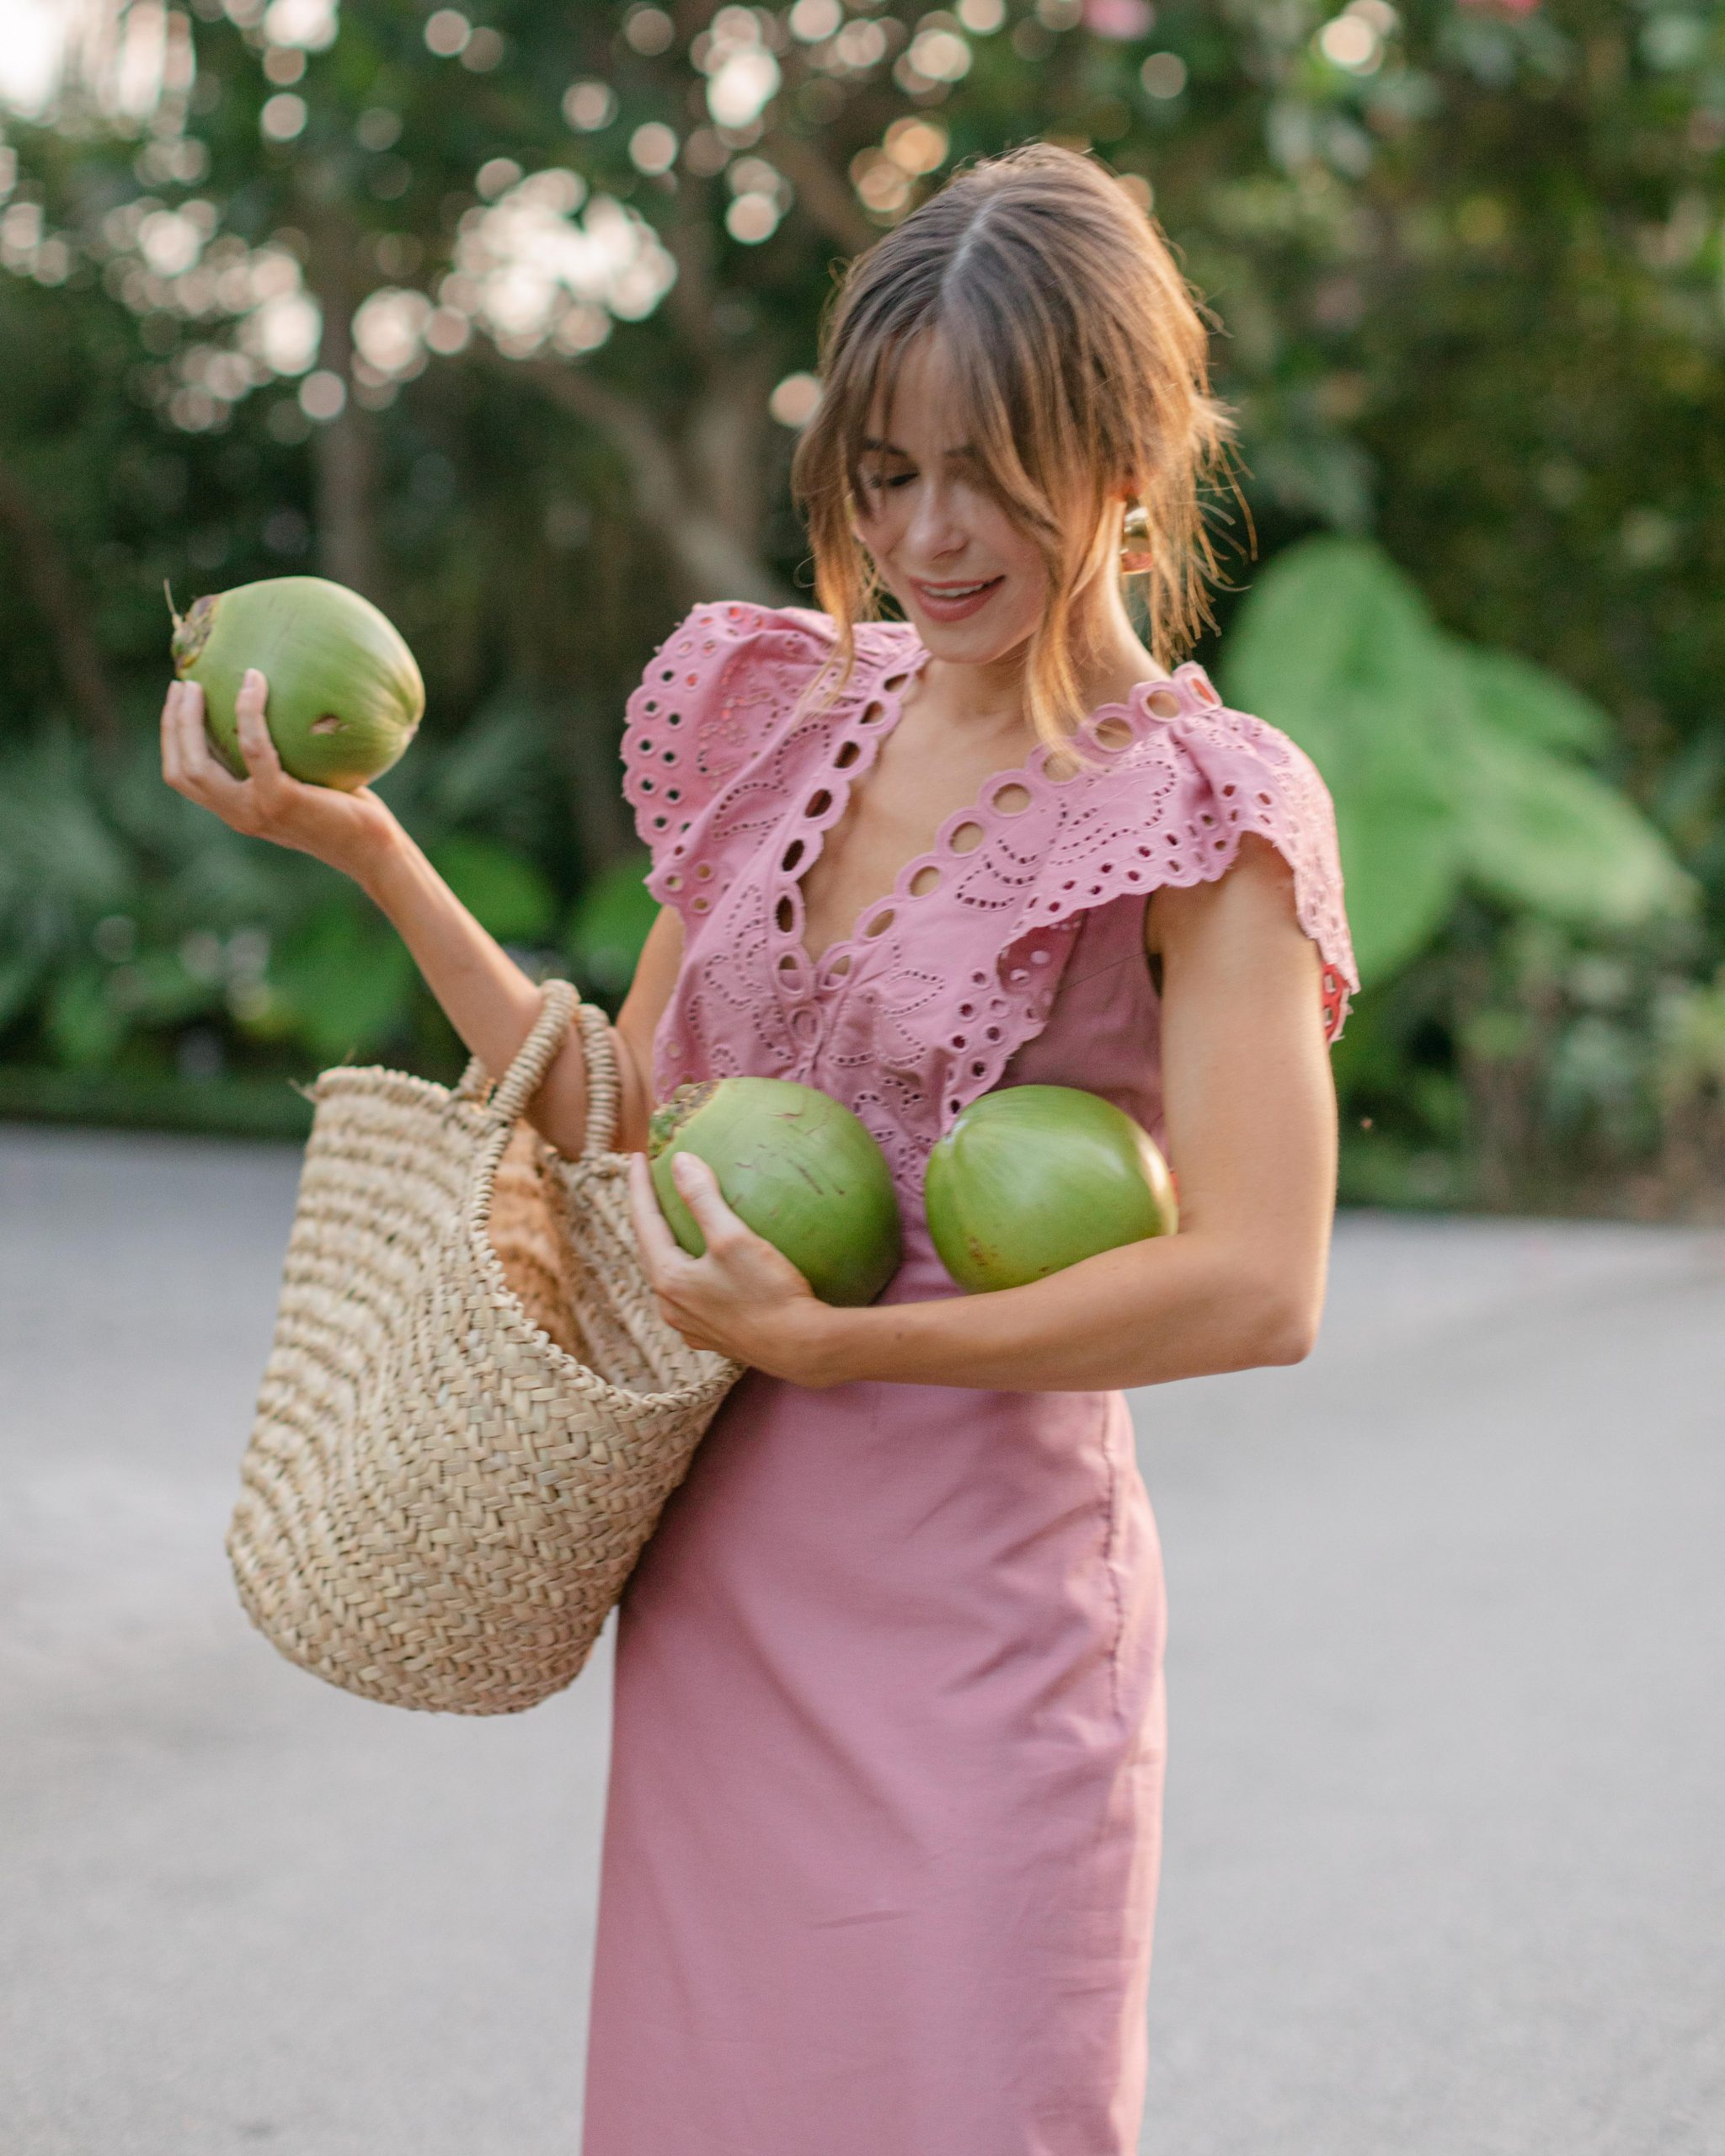 Style Blogger Stephanie Hill shares Cotton Pieces I Love for Summer on The Style Bungalow